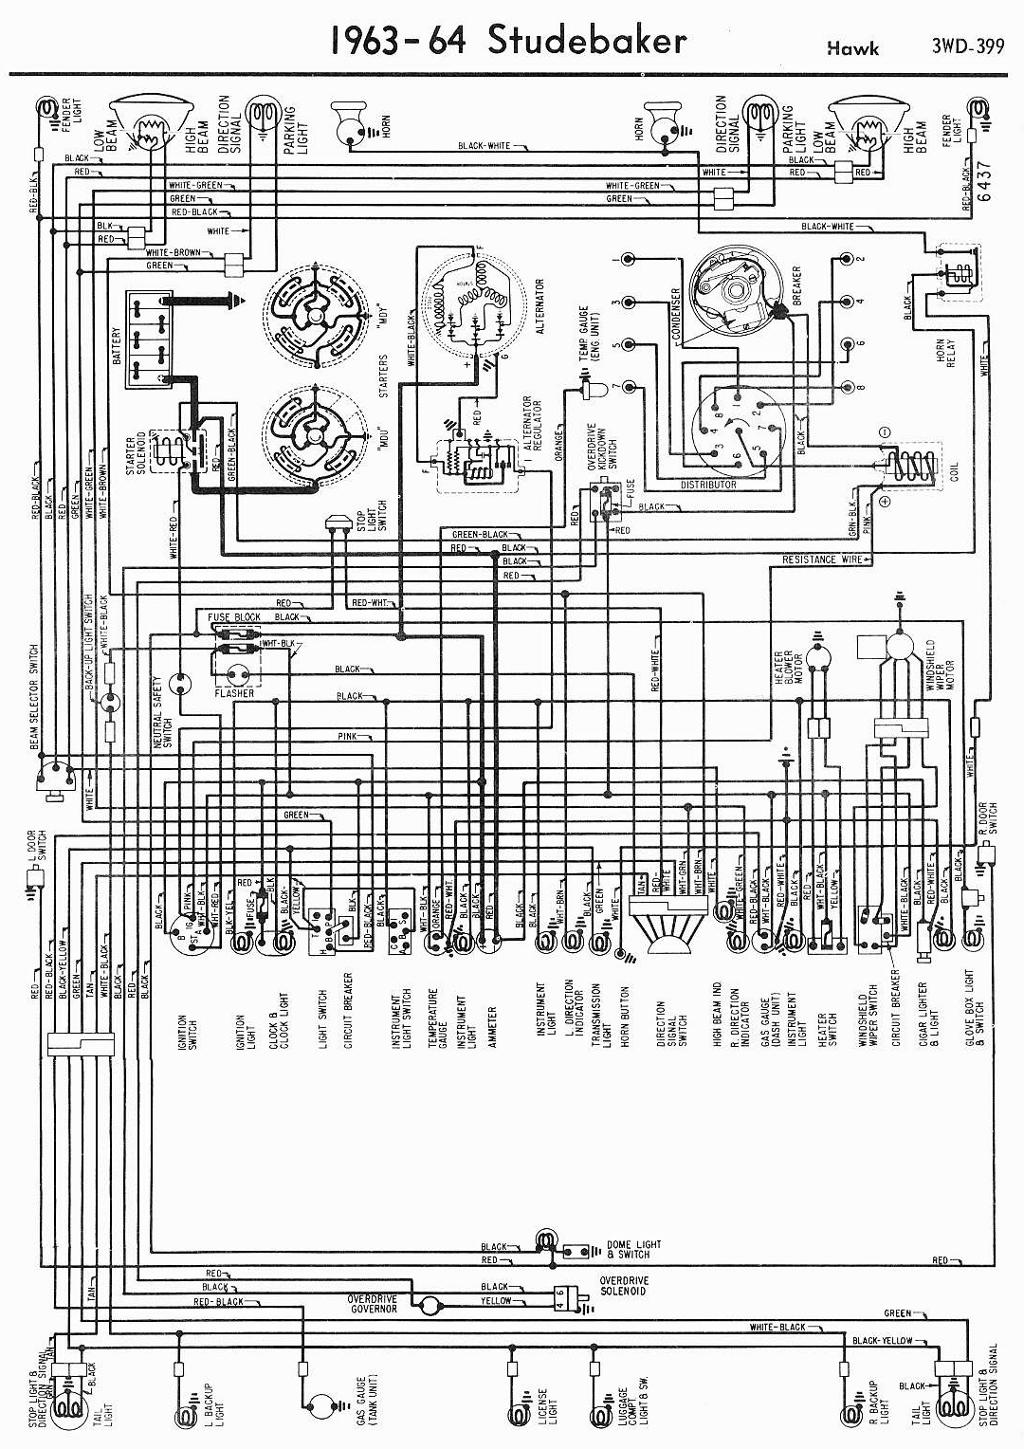 Studebaker wiring diagrams wiring diagrams schematics studebaker car manuals wiring diagrams pdf fault codes rh automotive manuals net at studebaker wiring publicscrutiny Choice Image